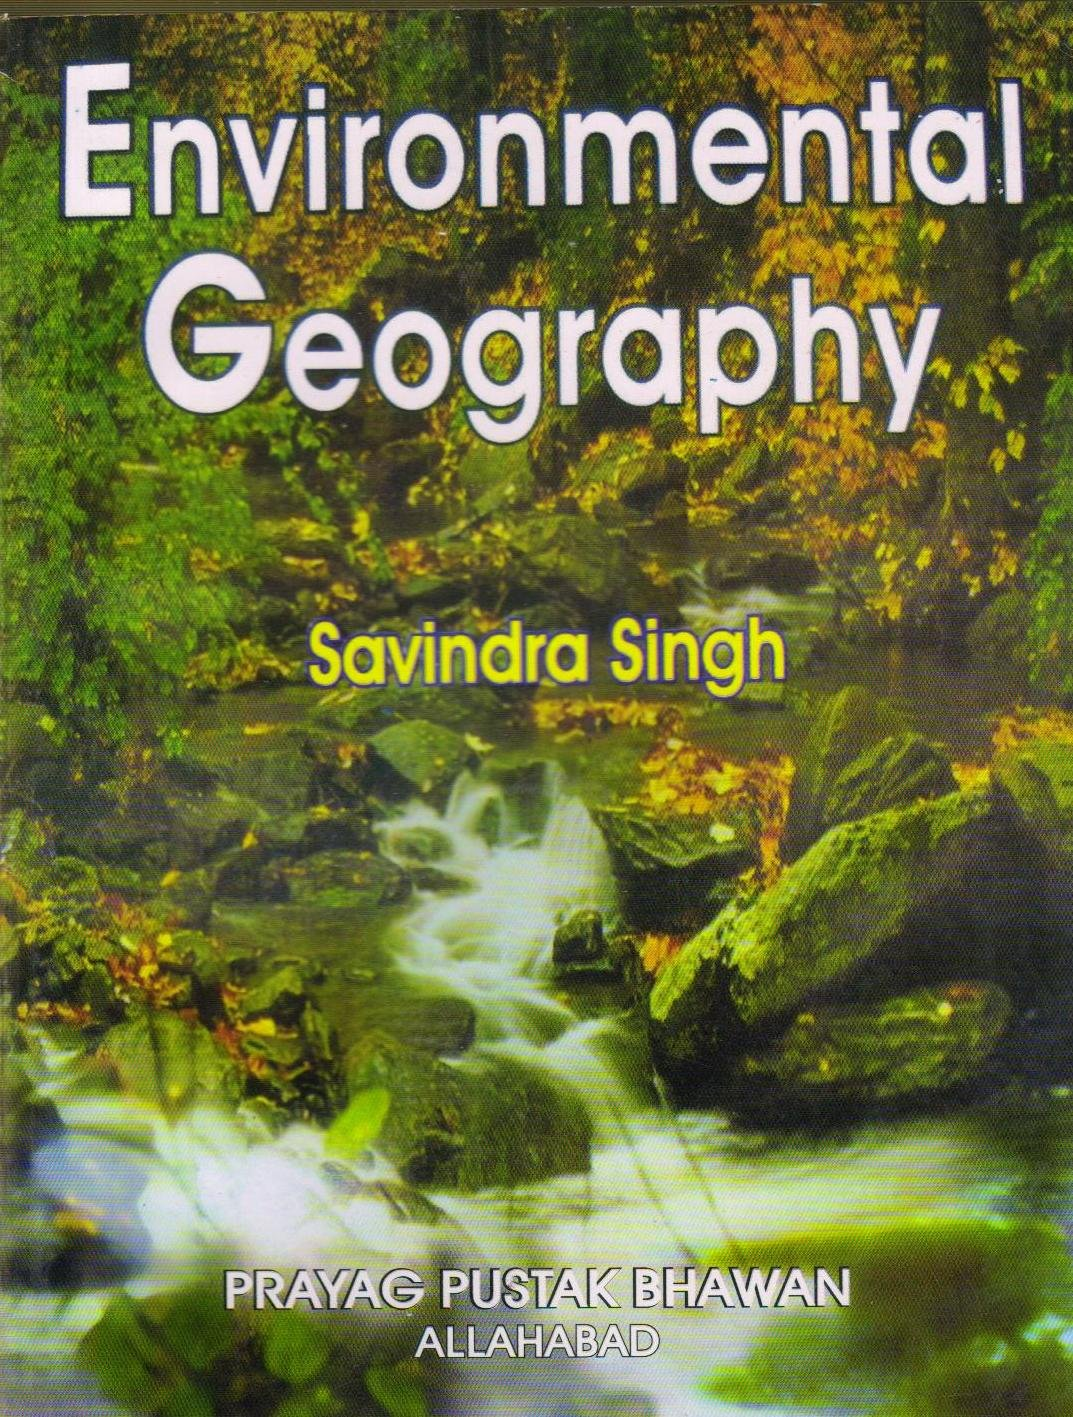 Buy Environmental Geography 2012 Book Online At Low Prices In India Environmental Geography 2012 Reviews Ratings Amazon In